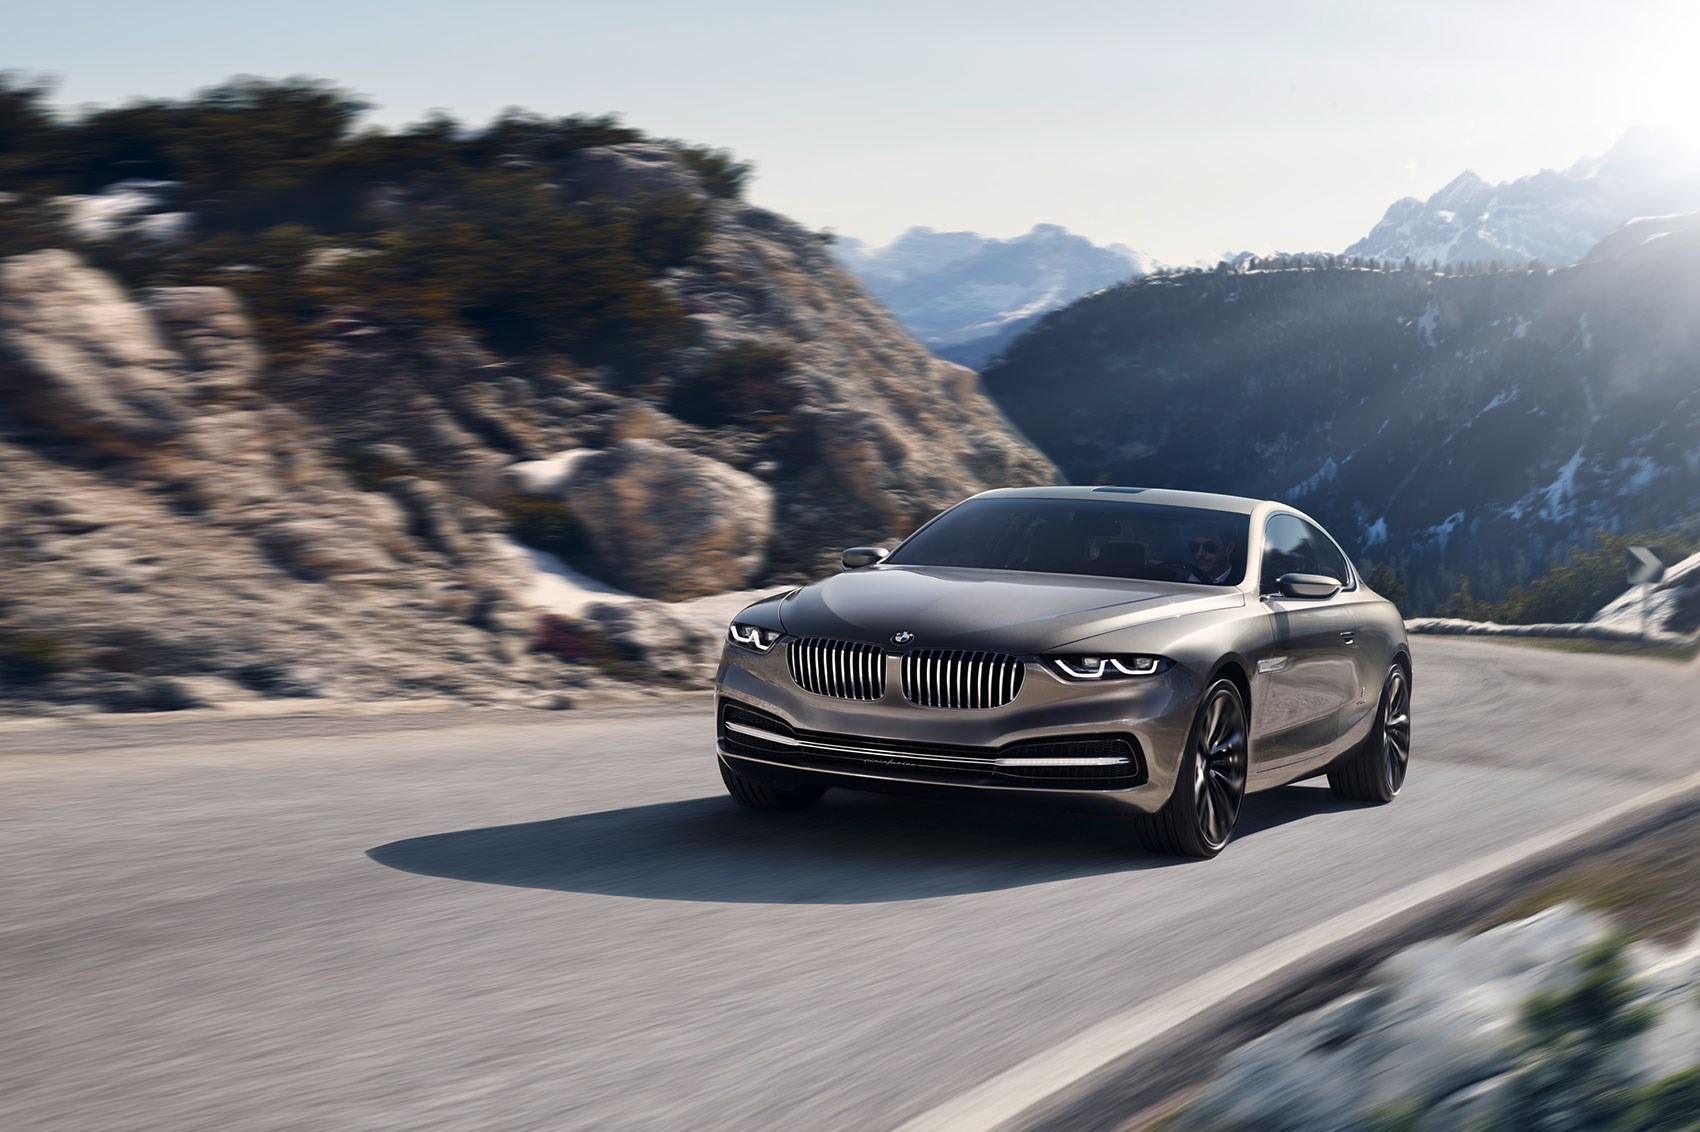 Bmw s dreamliner 9 series coupe coming in 2020 by car for Max motor dreams cost